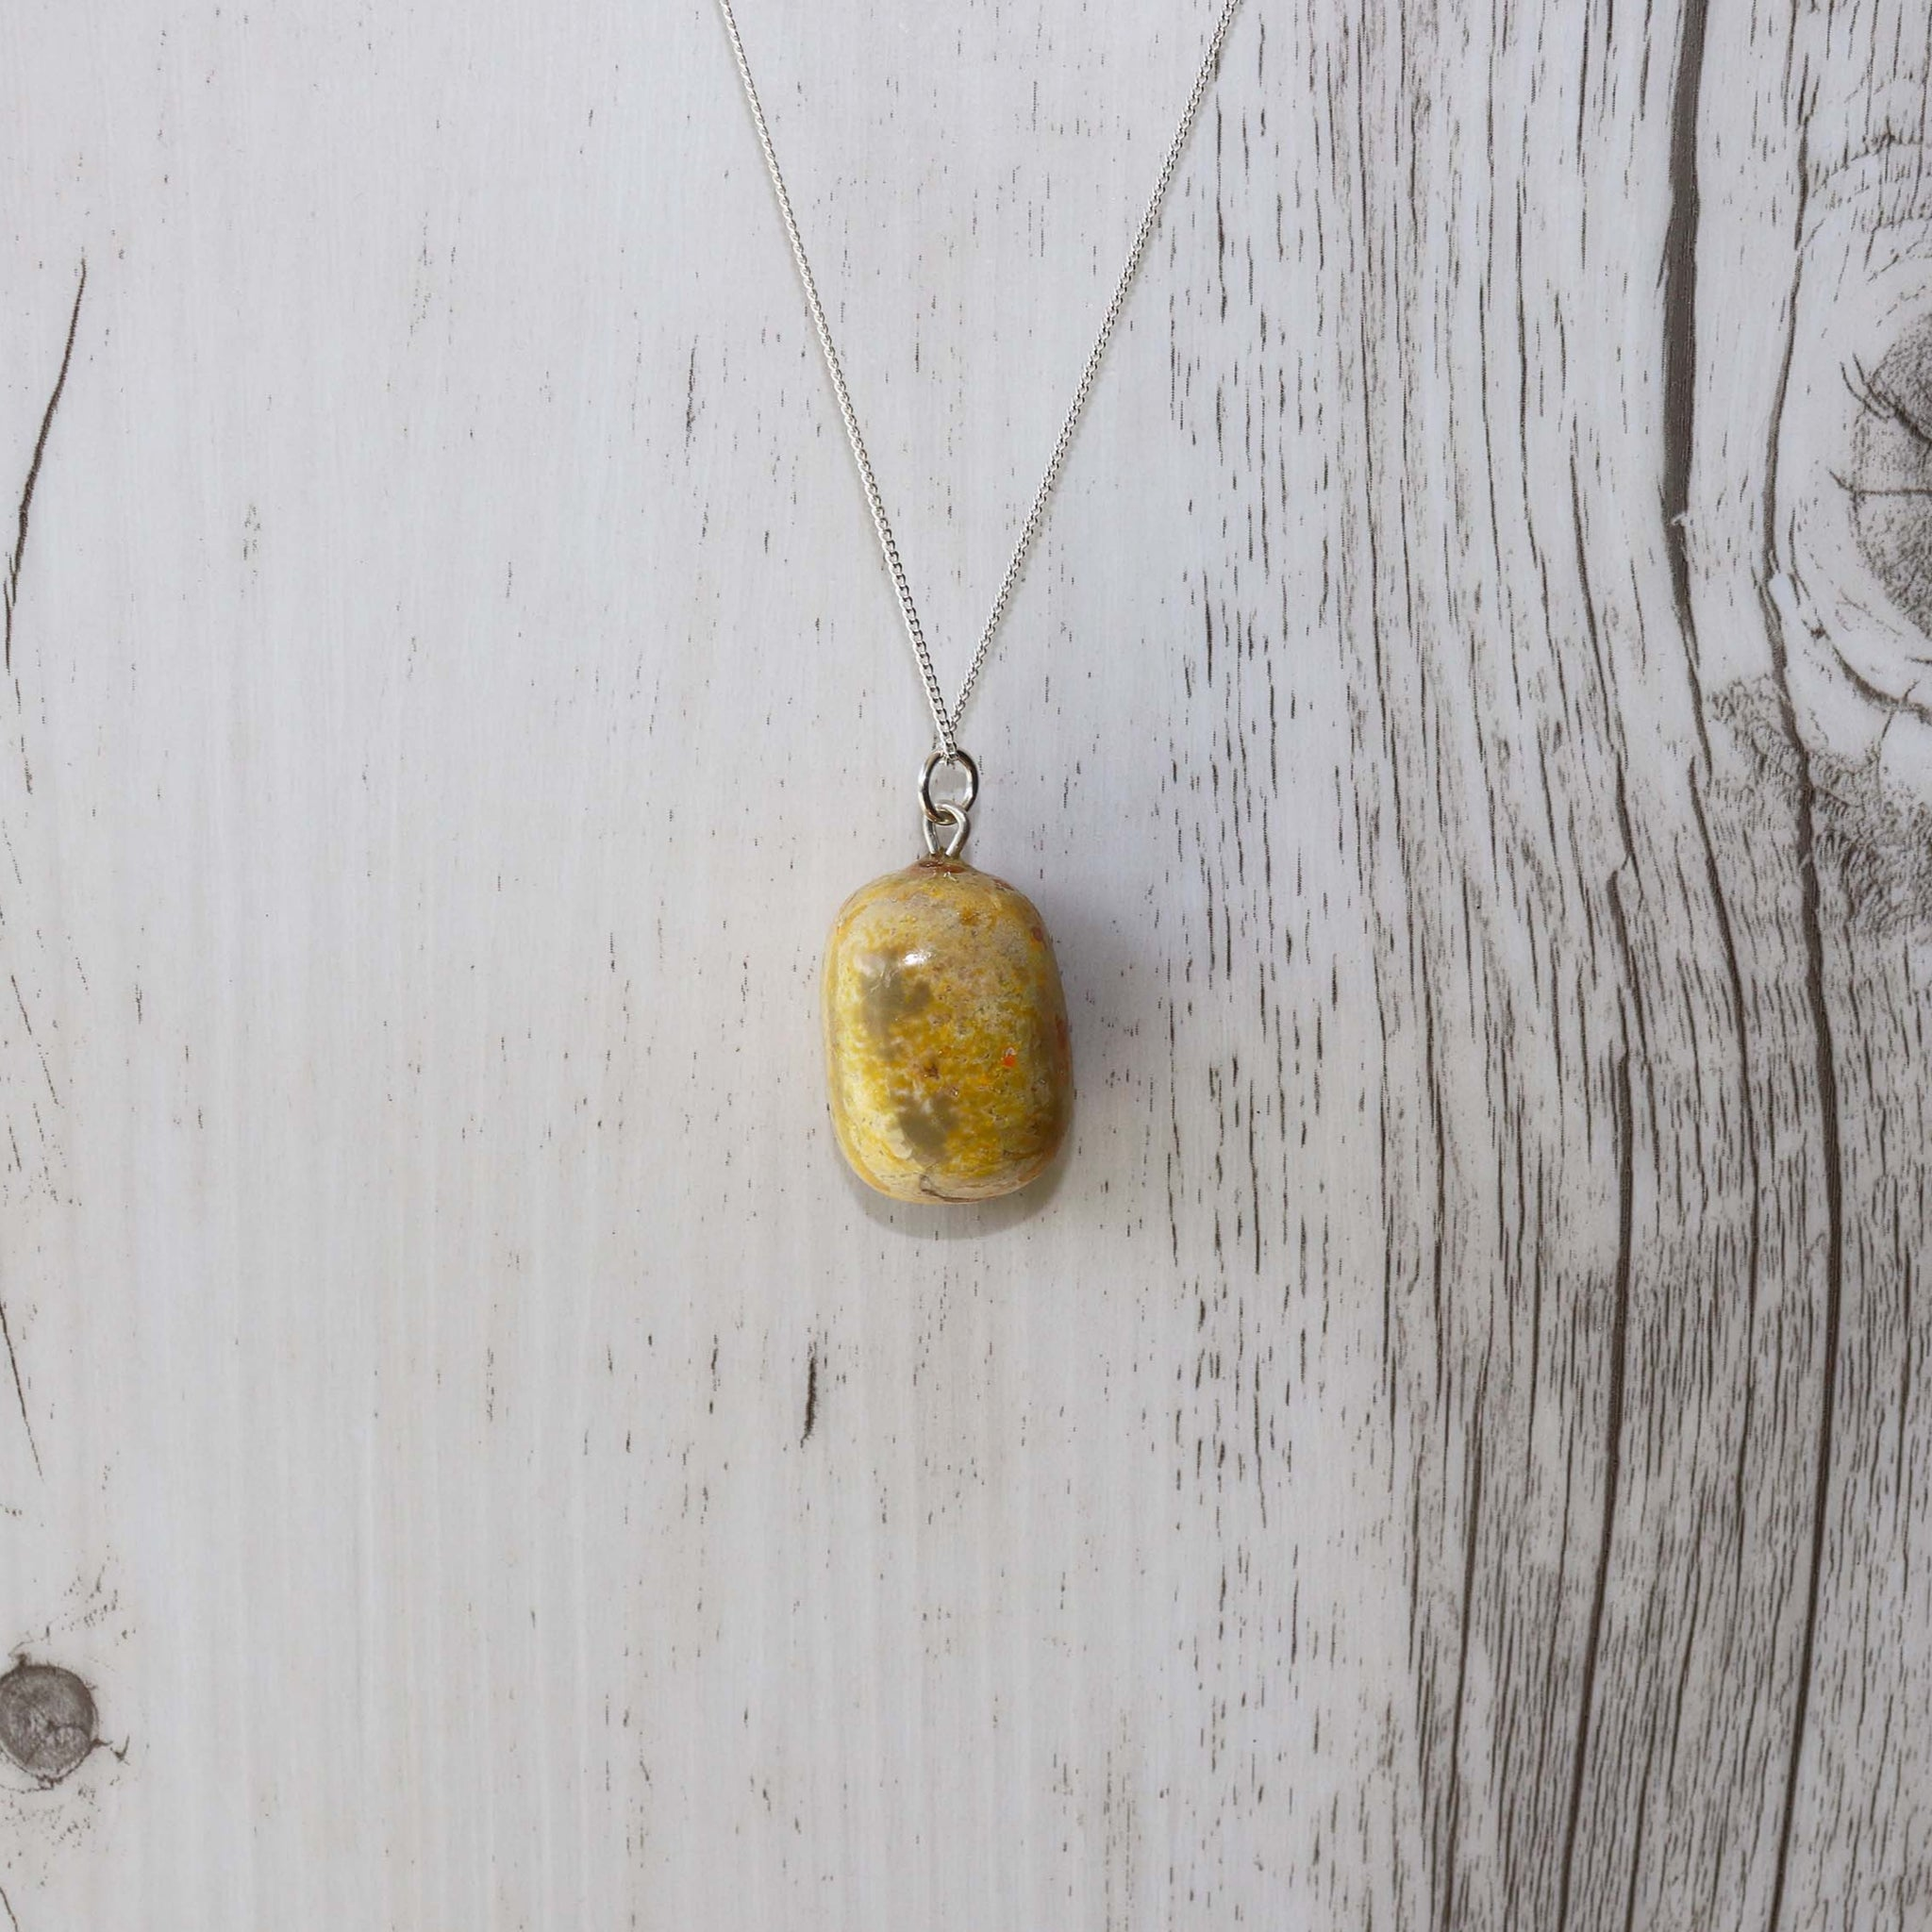 Bumble Bee Jasper Crystal Necklace - Vintage Rose Handmade Jewellery